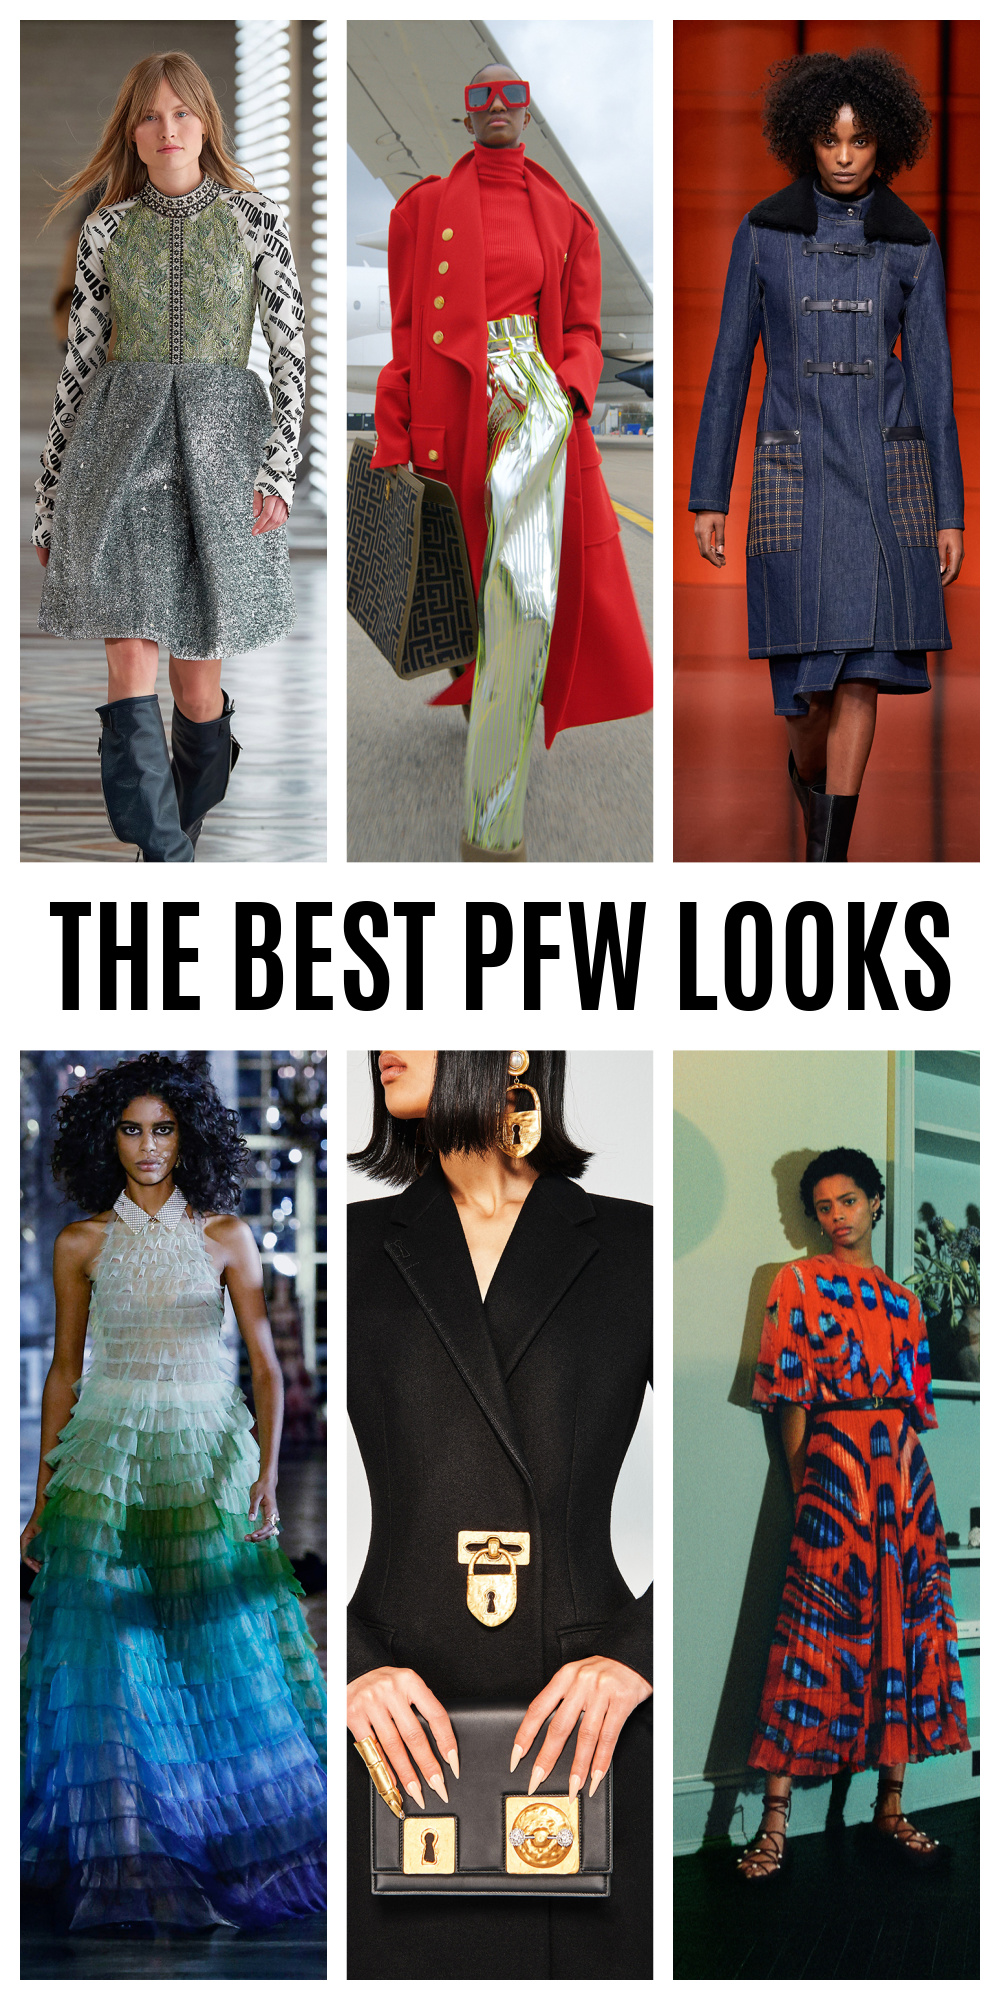 Best PFW Looks I DreaminLace.com #fashionstyle